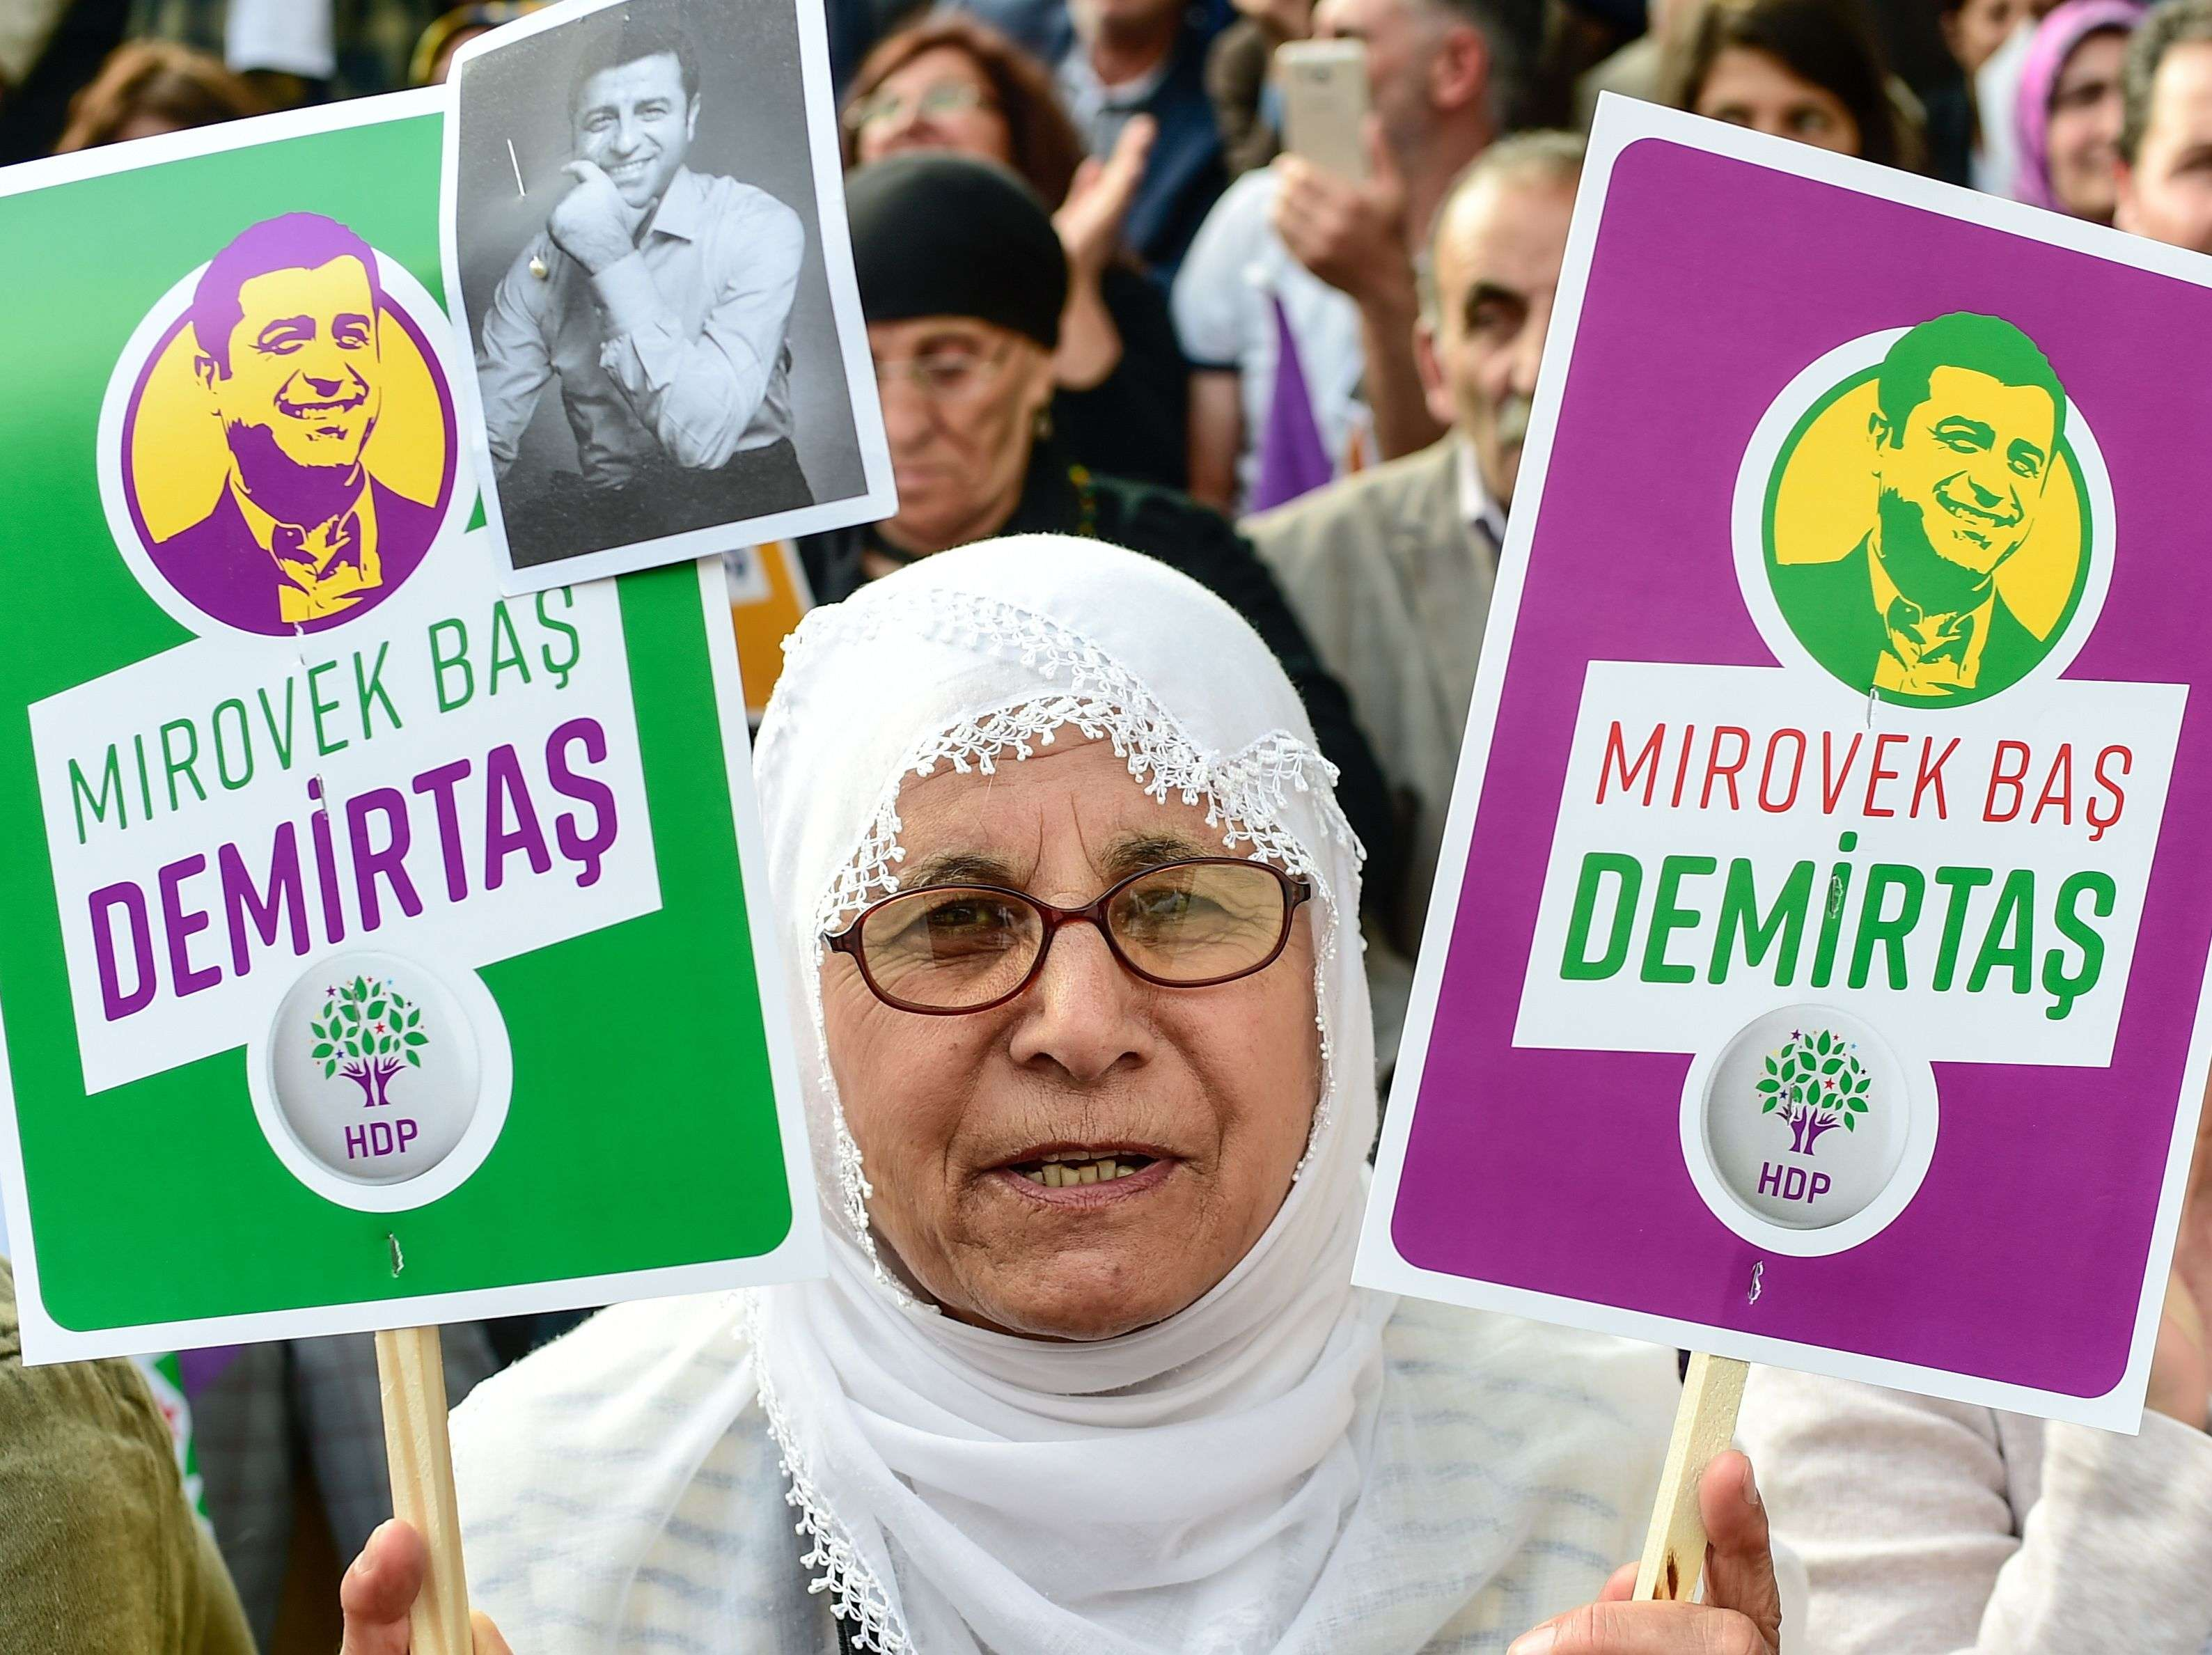 A woman holds pictures of former HDP leader Selahattin Demirtas, in jail for a year and a half, during a rally, on May 4. (AFP)